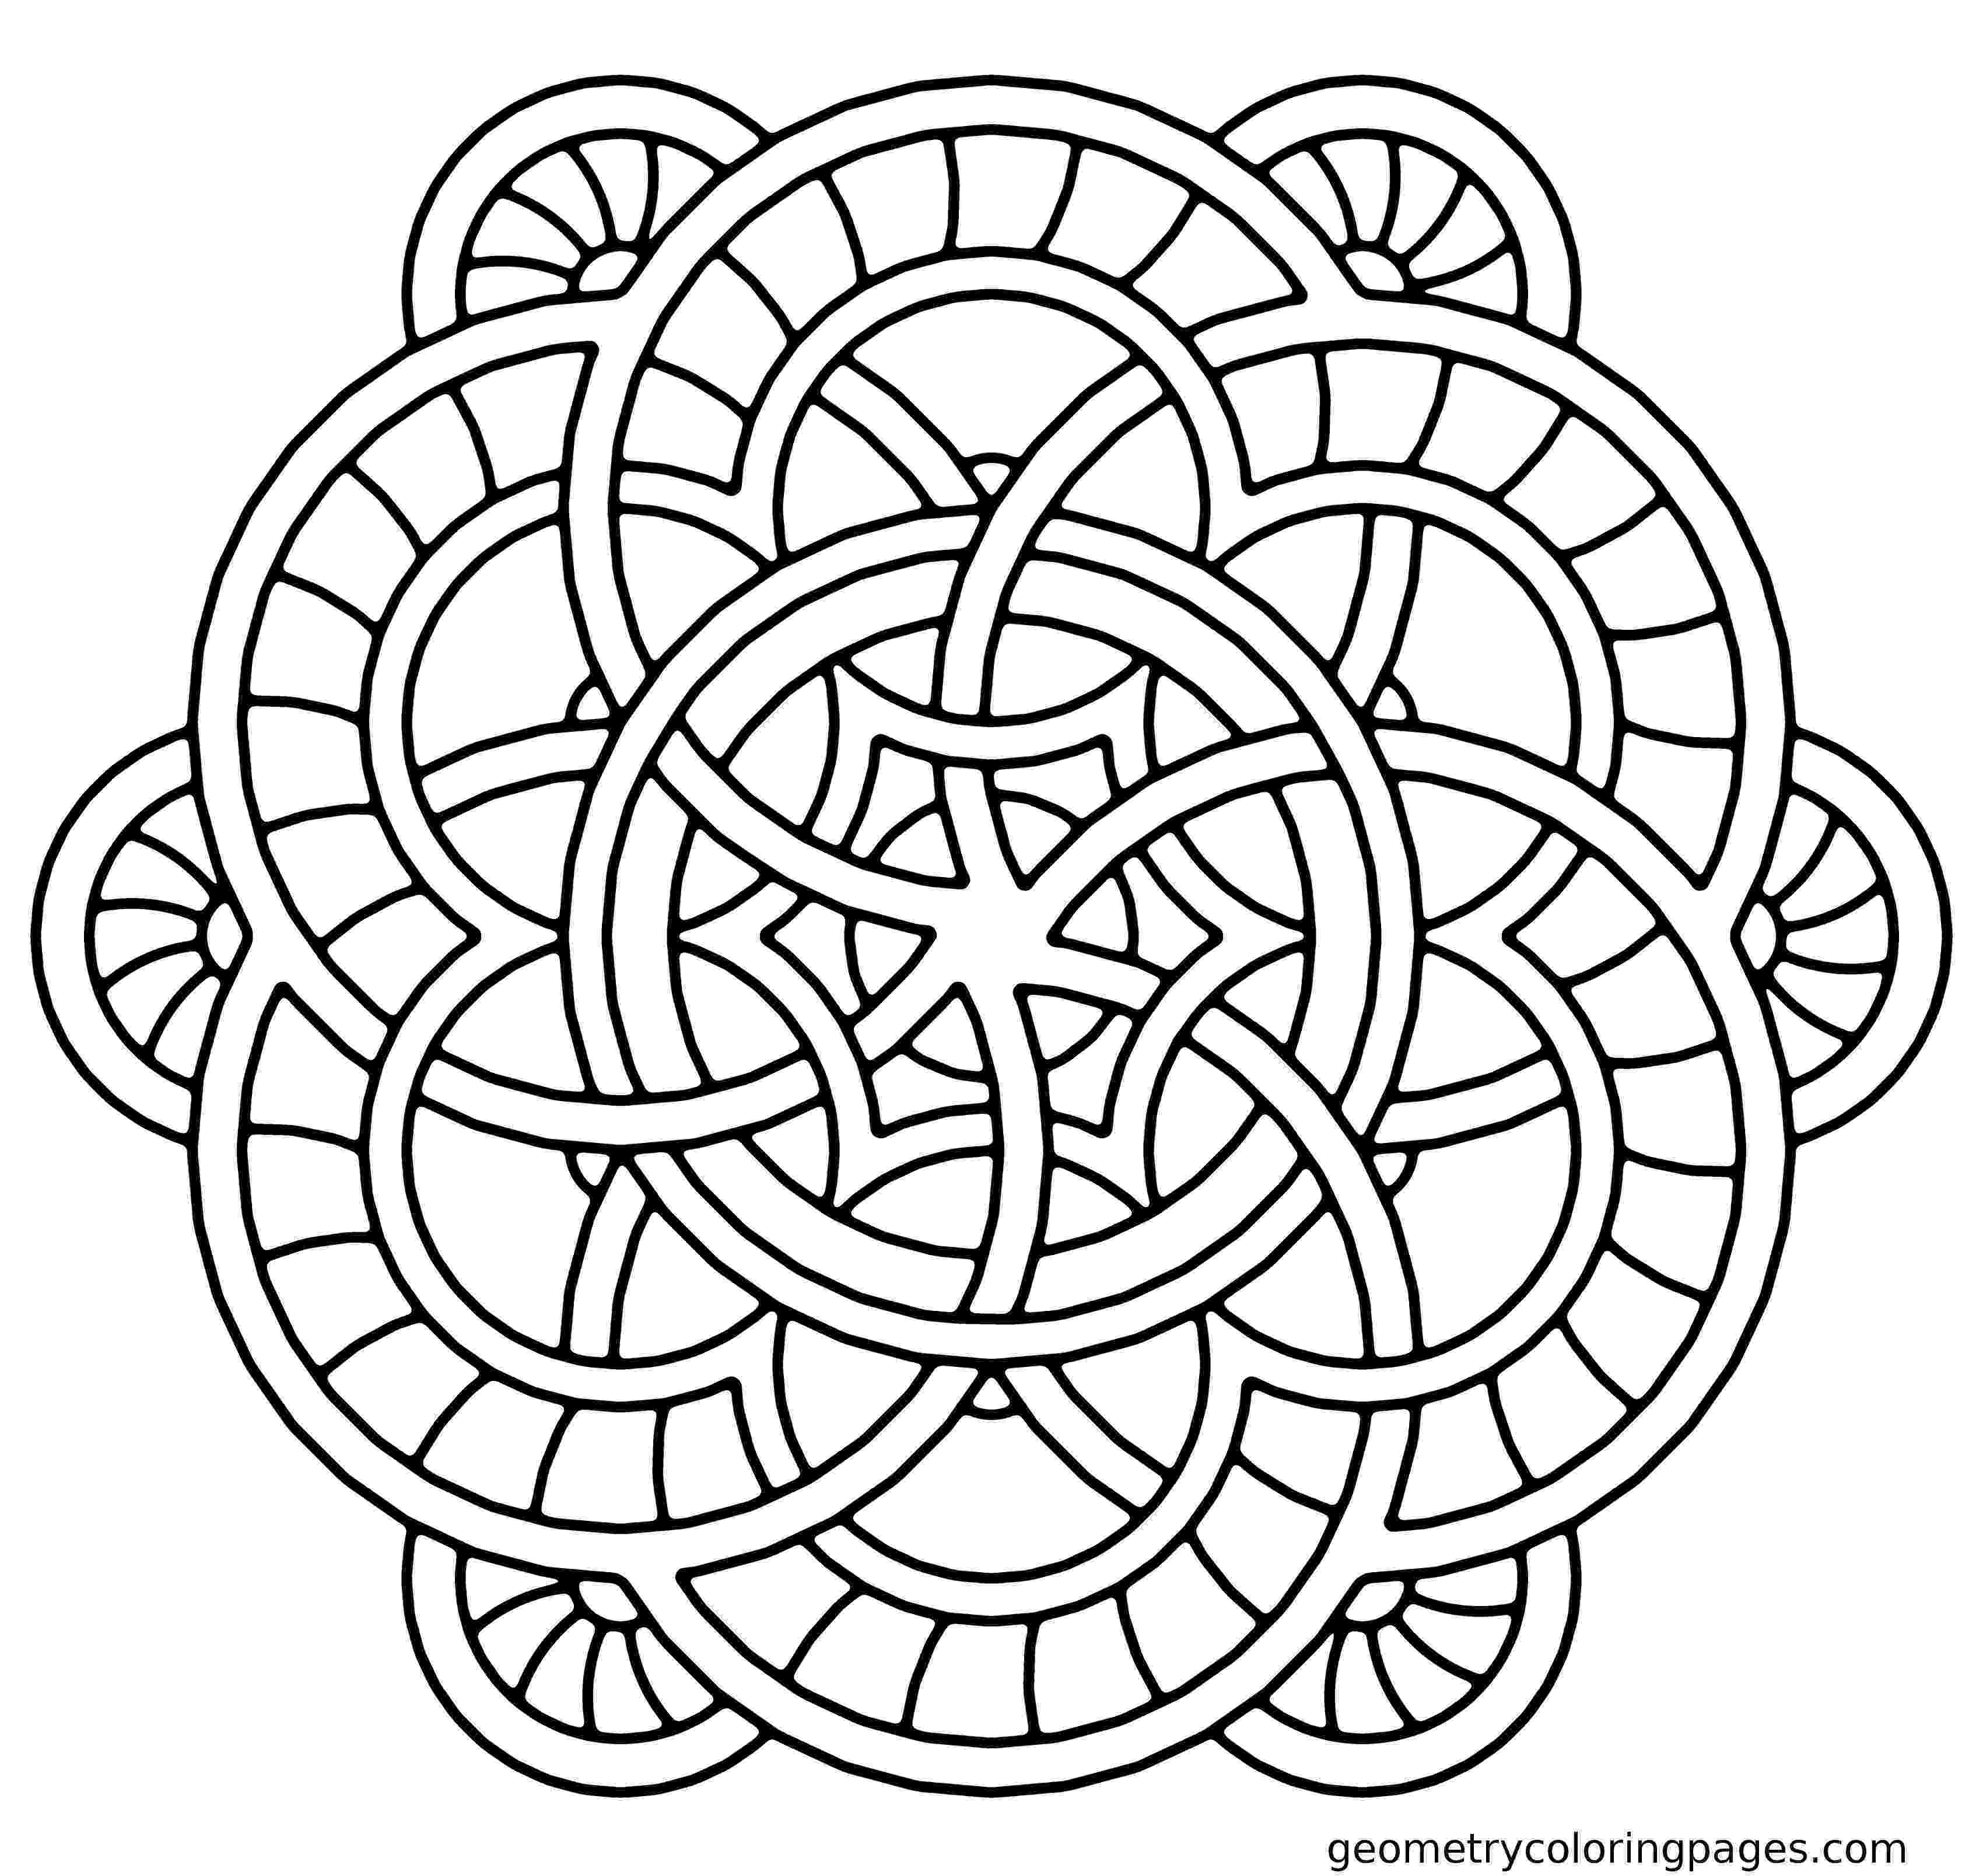 free online mandala coloring pages for adults opal palace mandala coloring page favecraftscom pages coloring for adults mandala online free